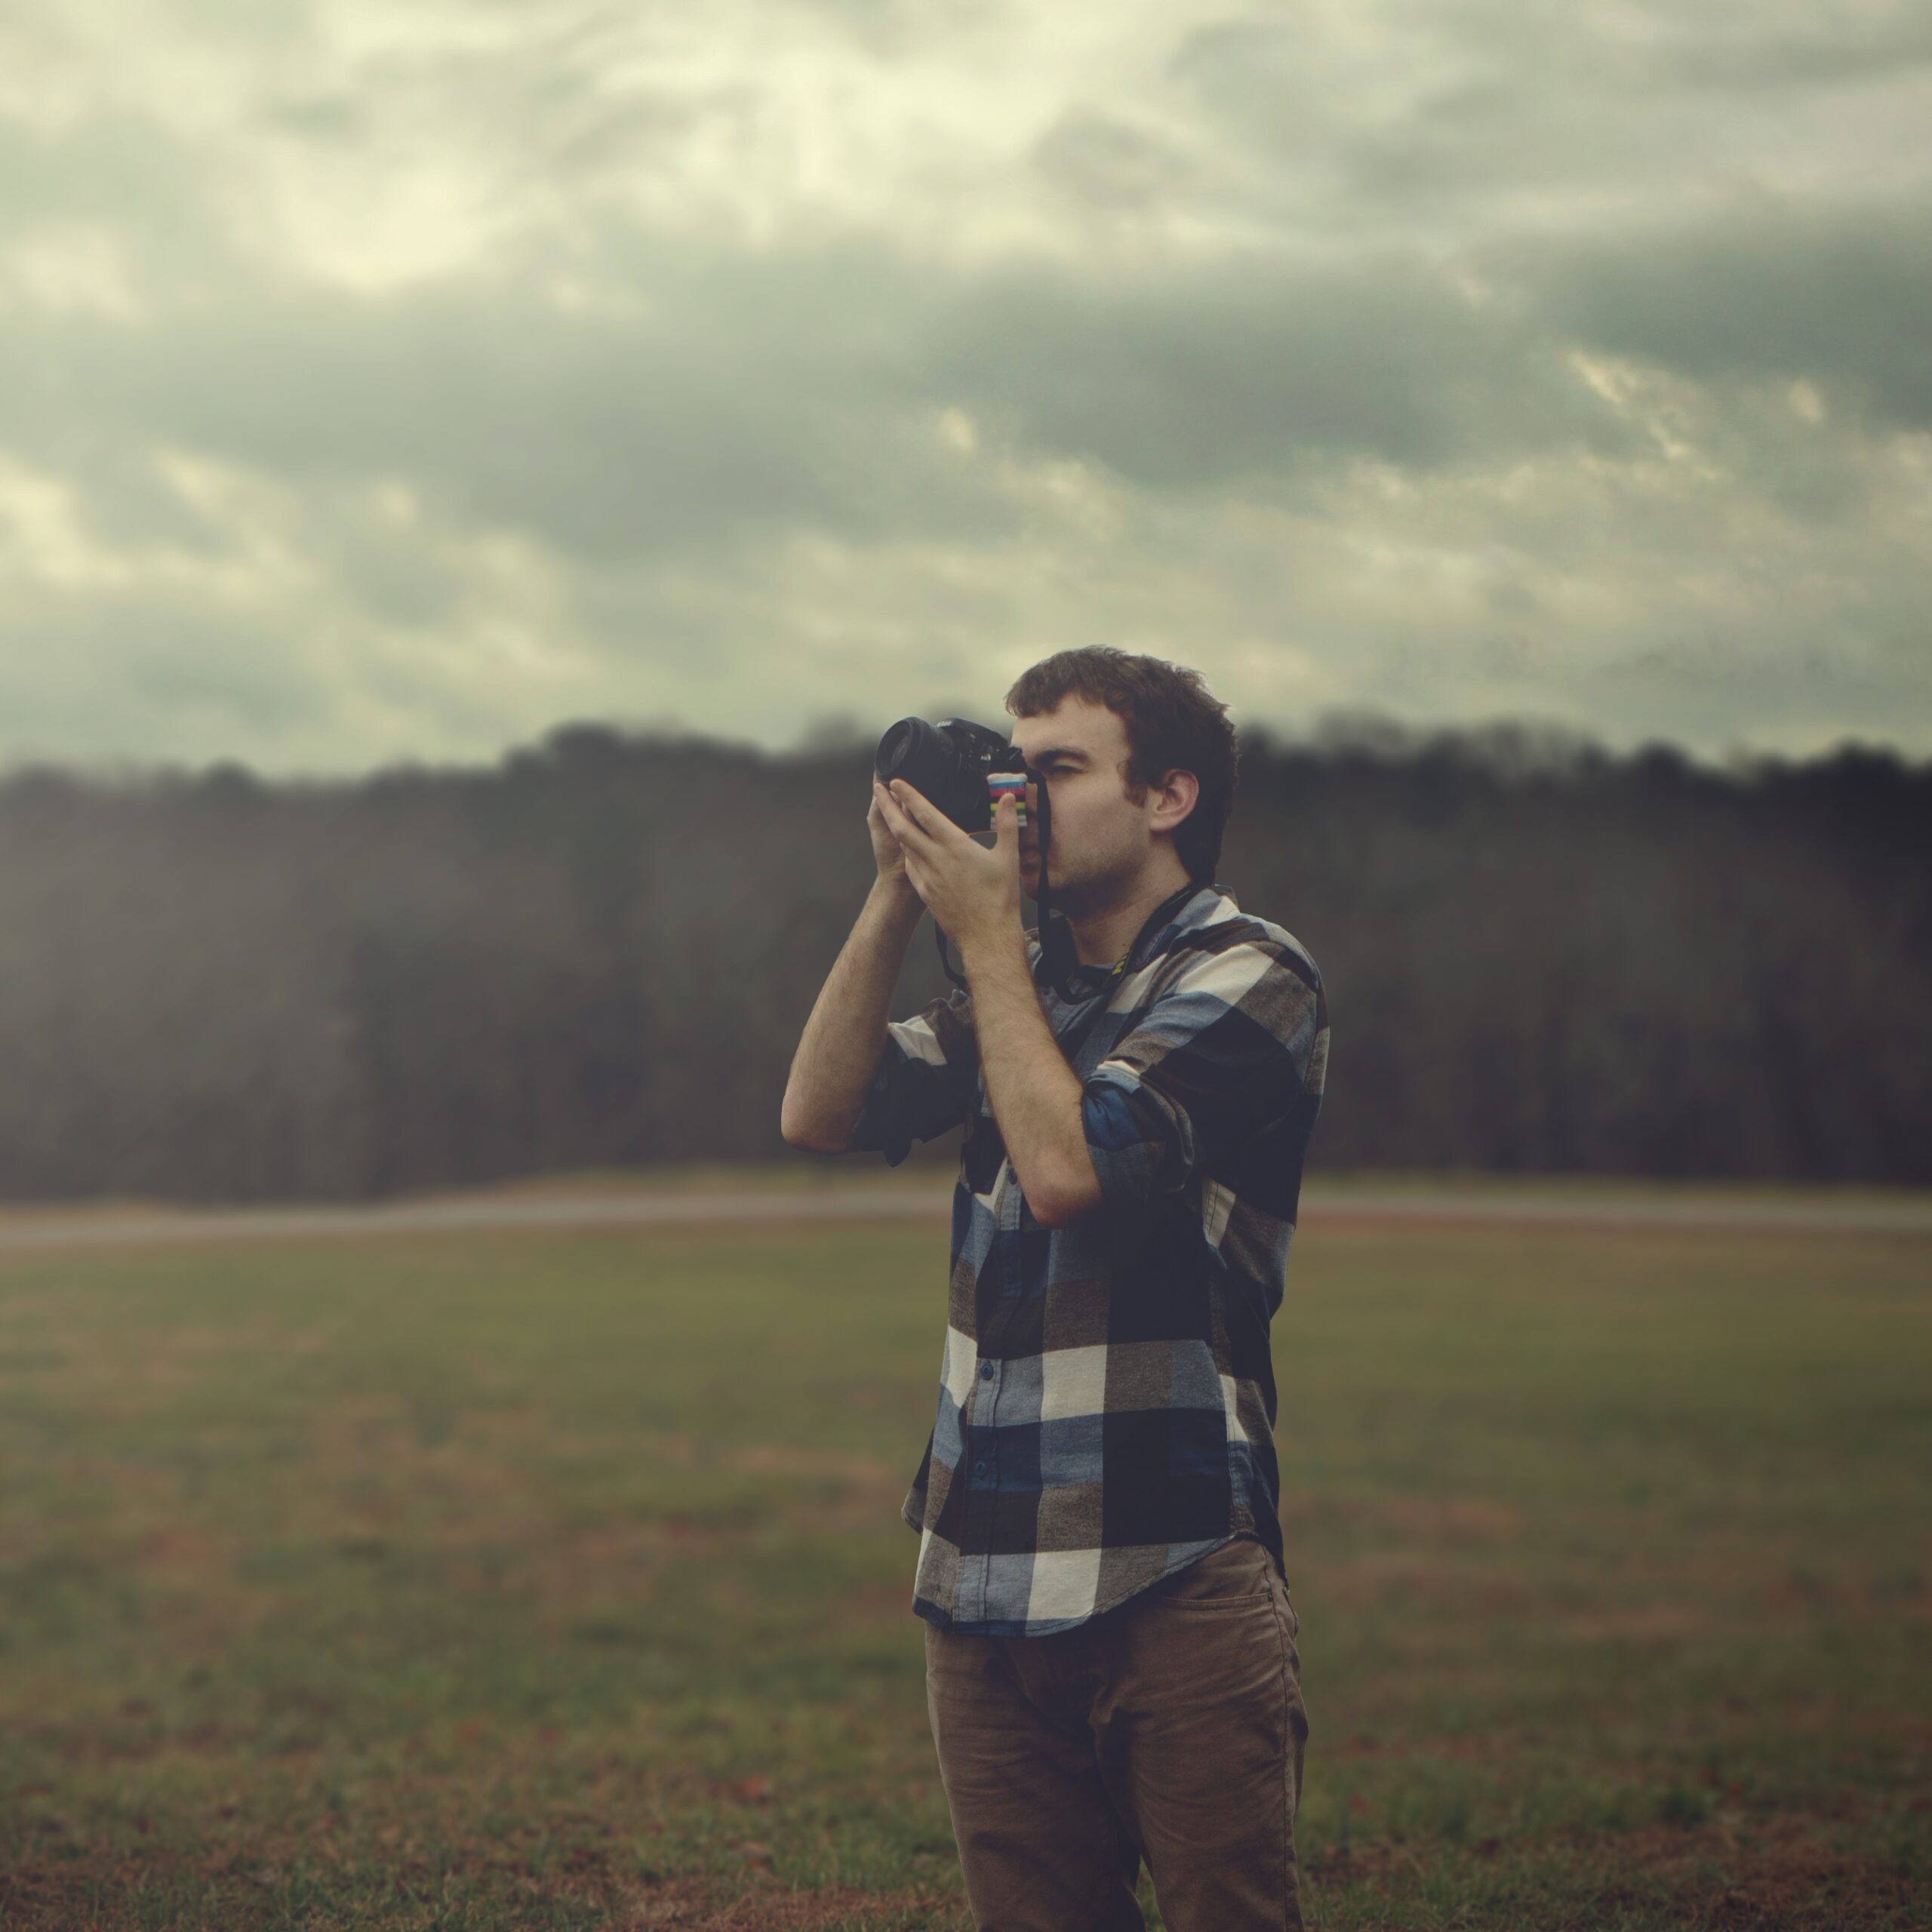 A man stands in a field and takes a photograph with a digital camera